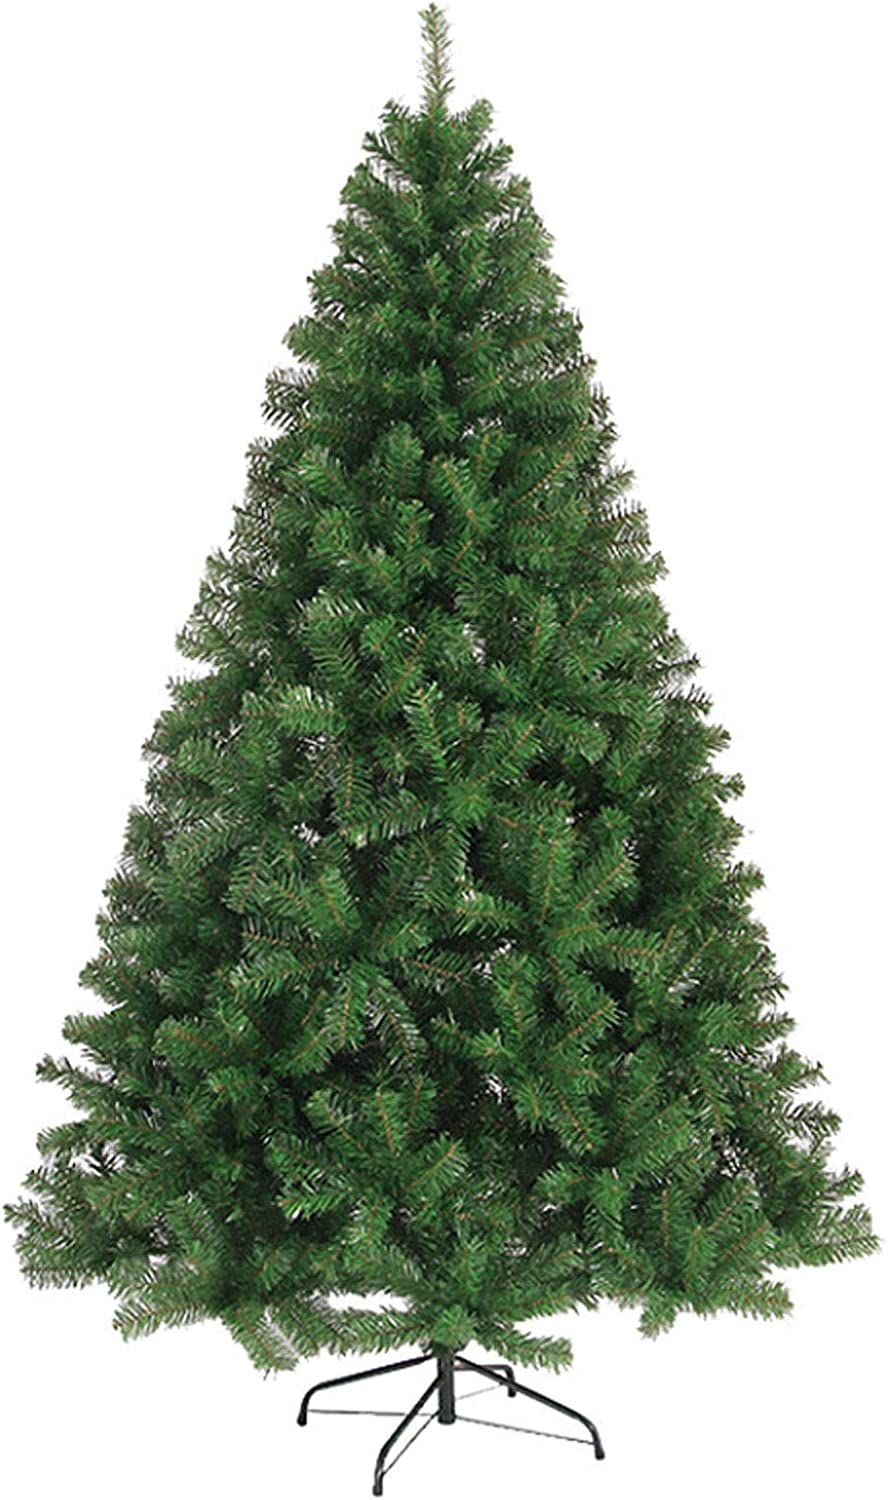 artificial christmas trees Christmas Boston Mall Trees 13ft 10ft Cheap sale A Encrypted